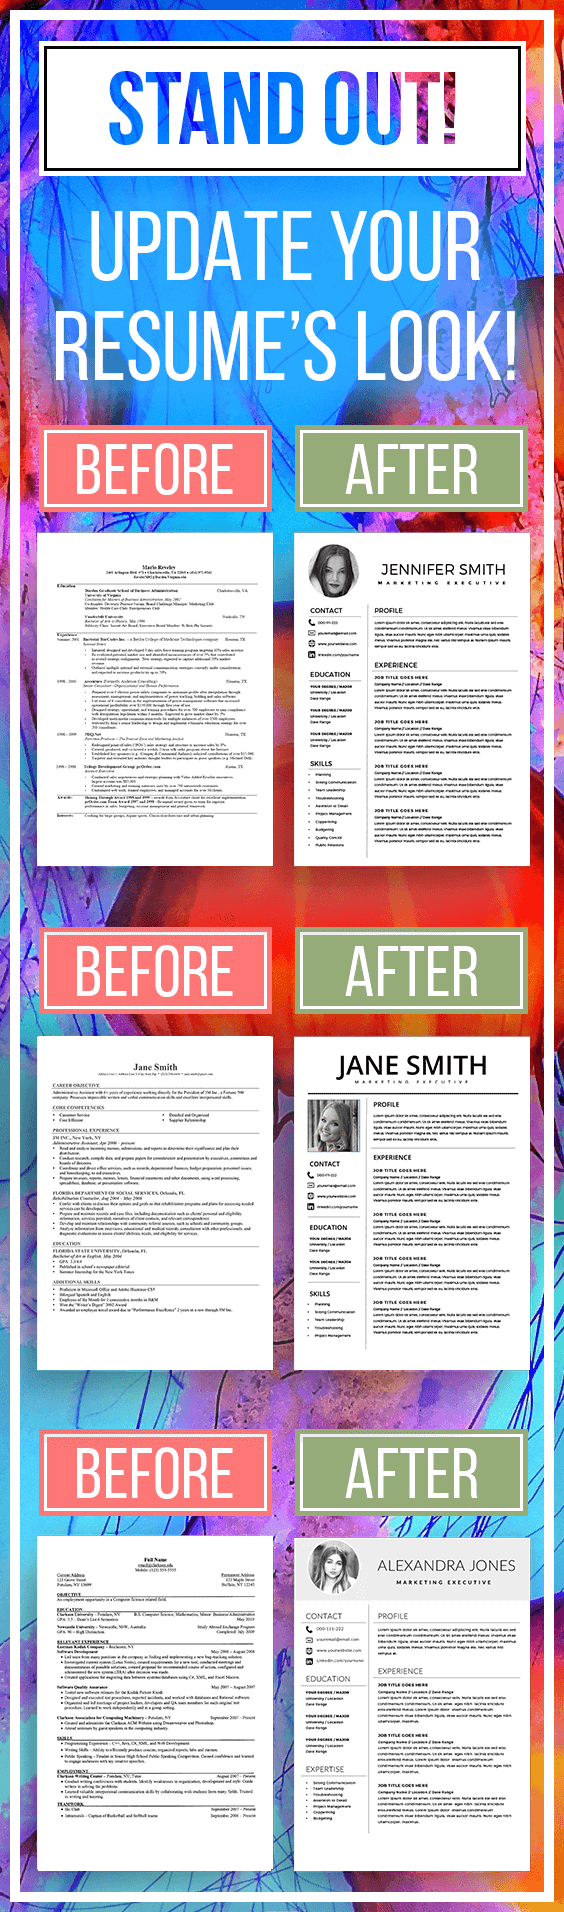 Resume Template Modern Resume Simple Resume Clean Resume Cool